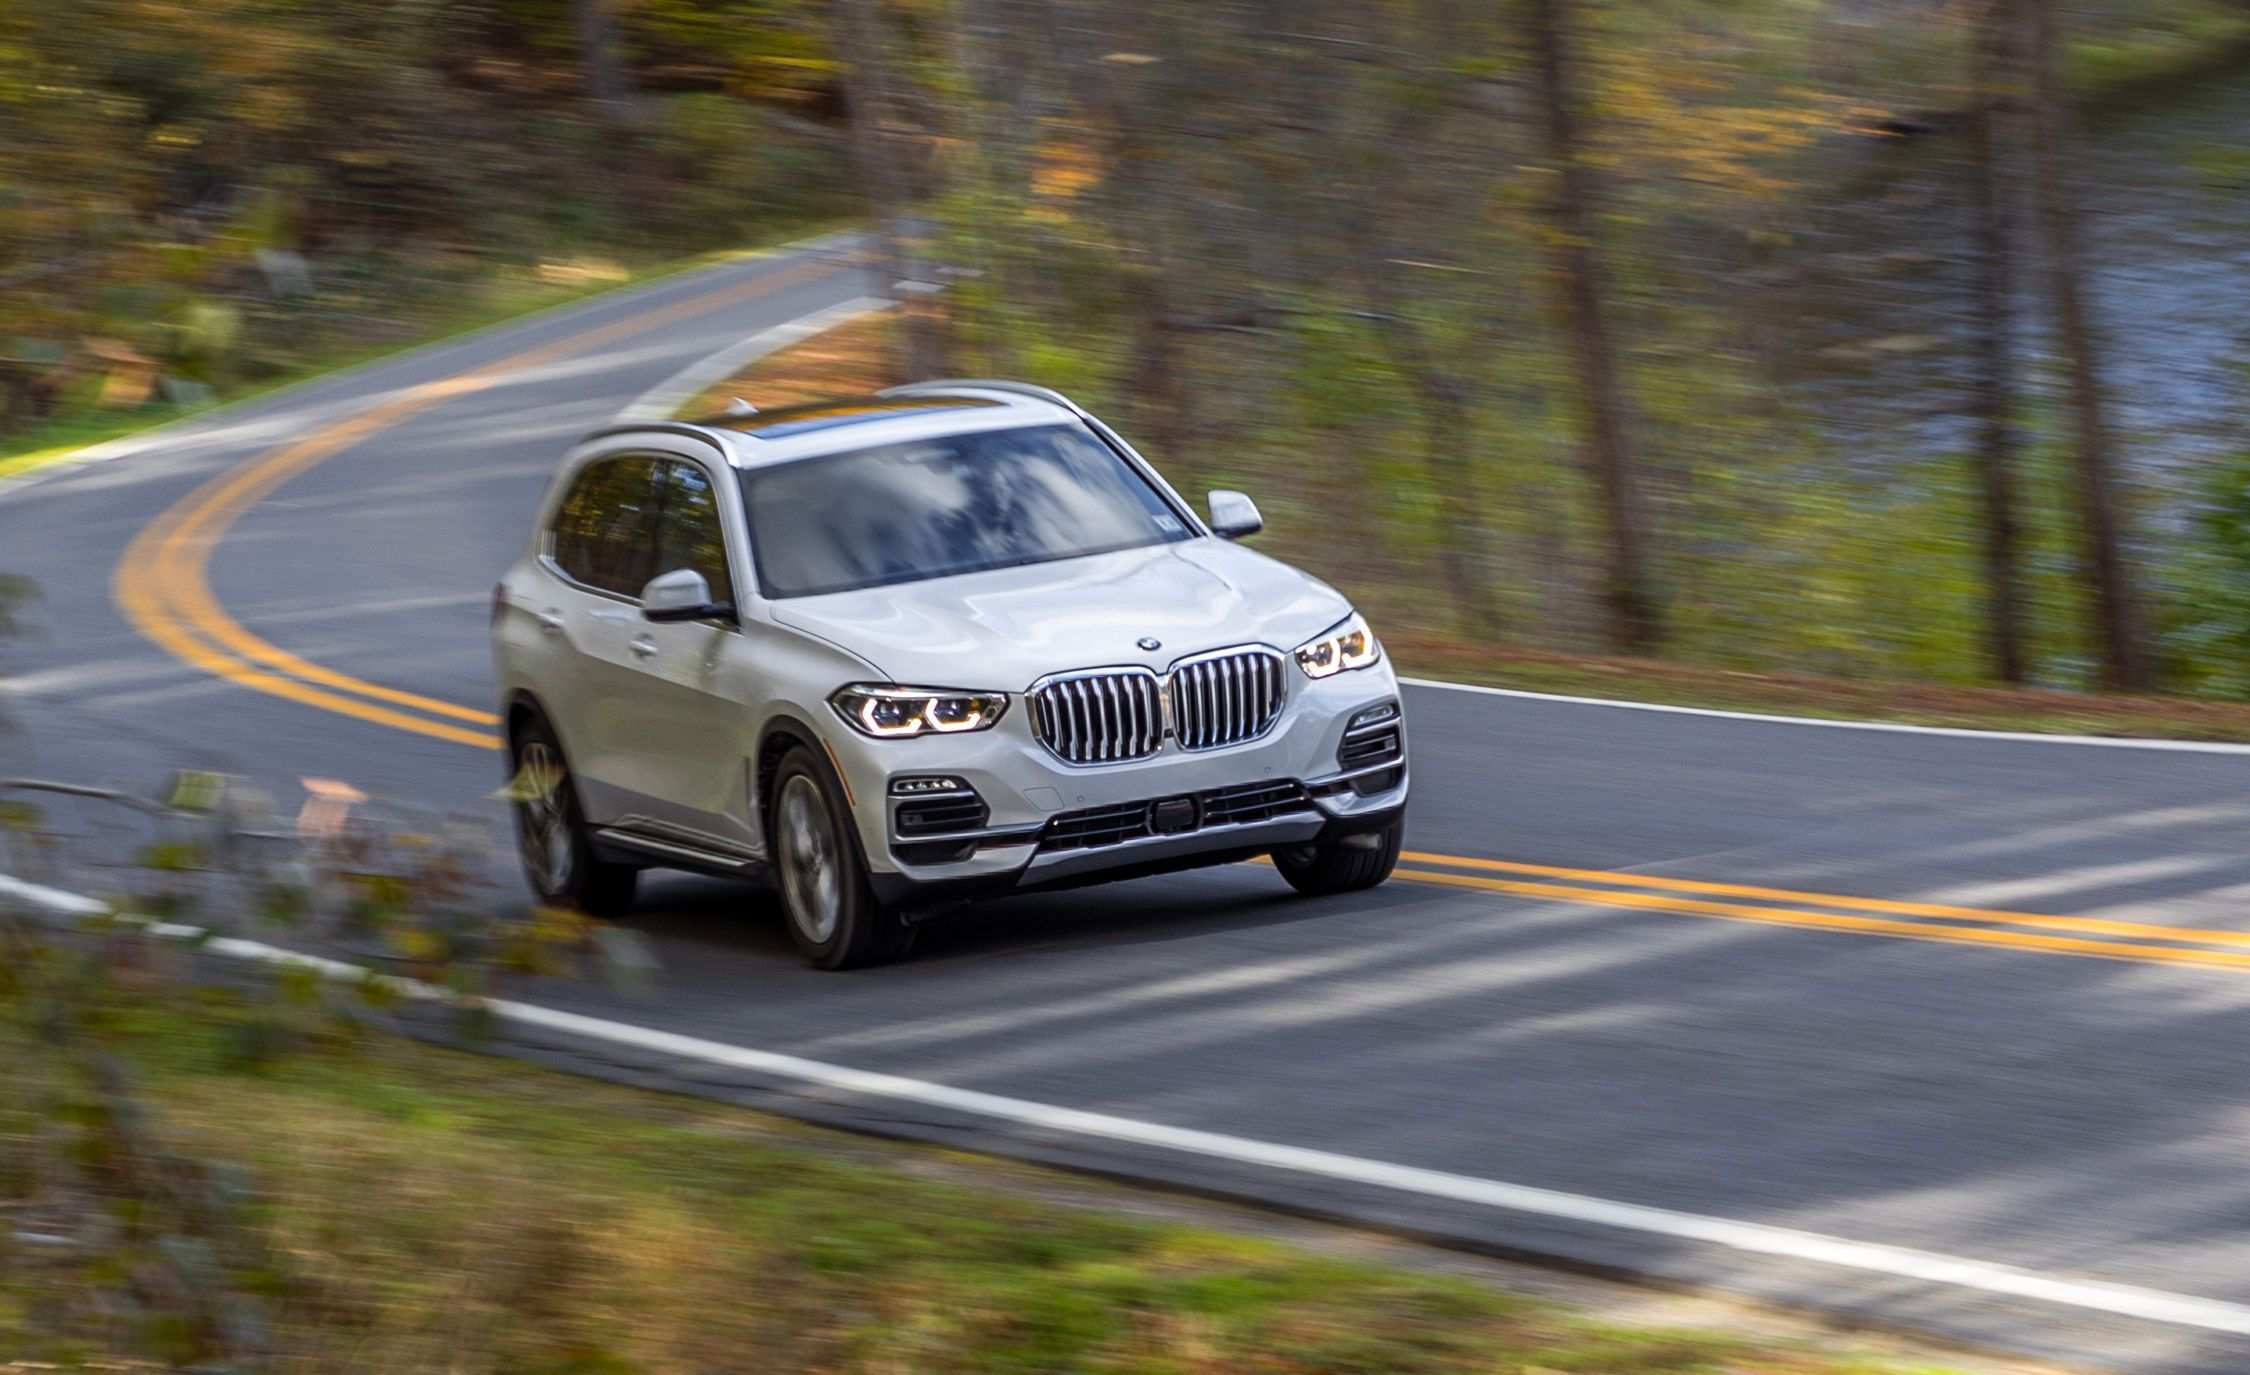 42 The Best 2019 Bmw Truck Pictures Images